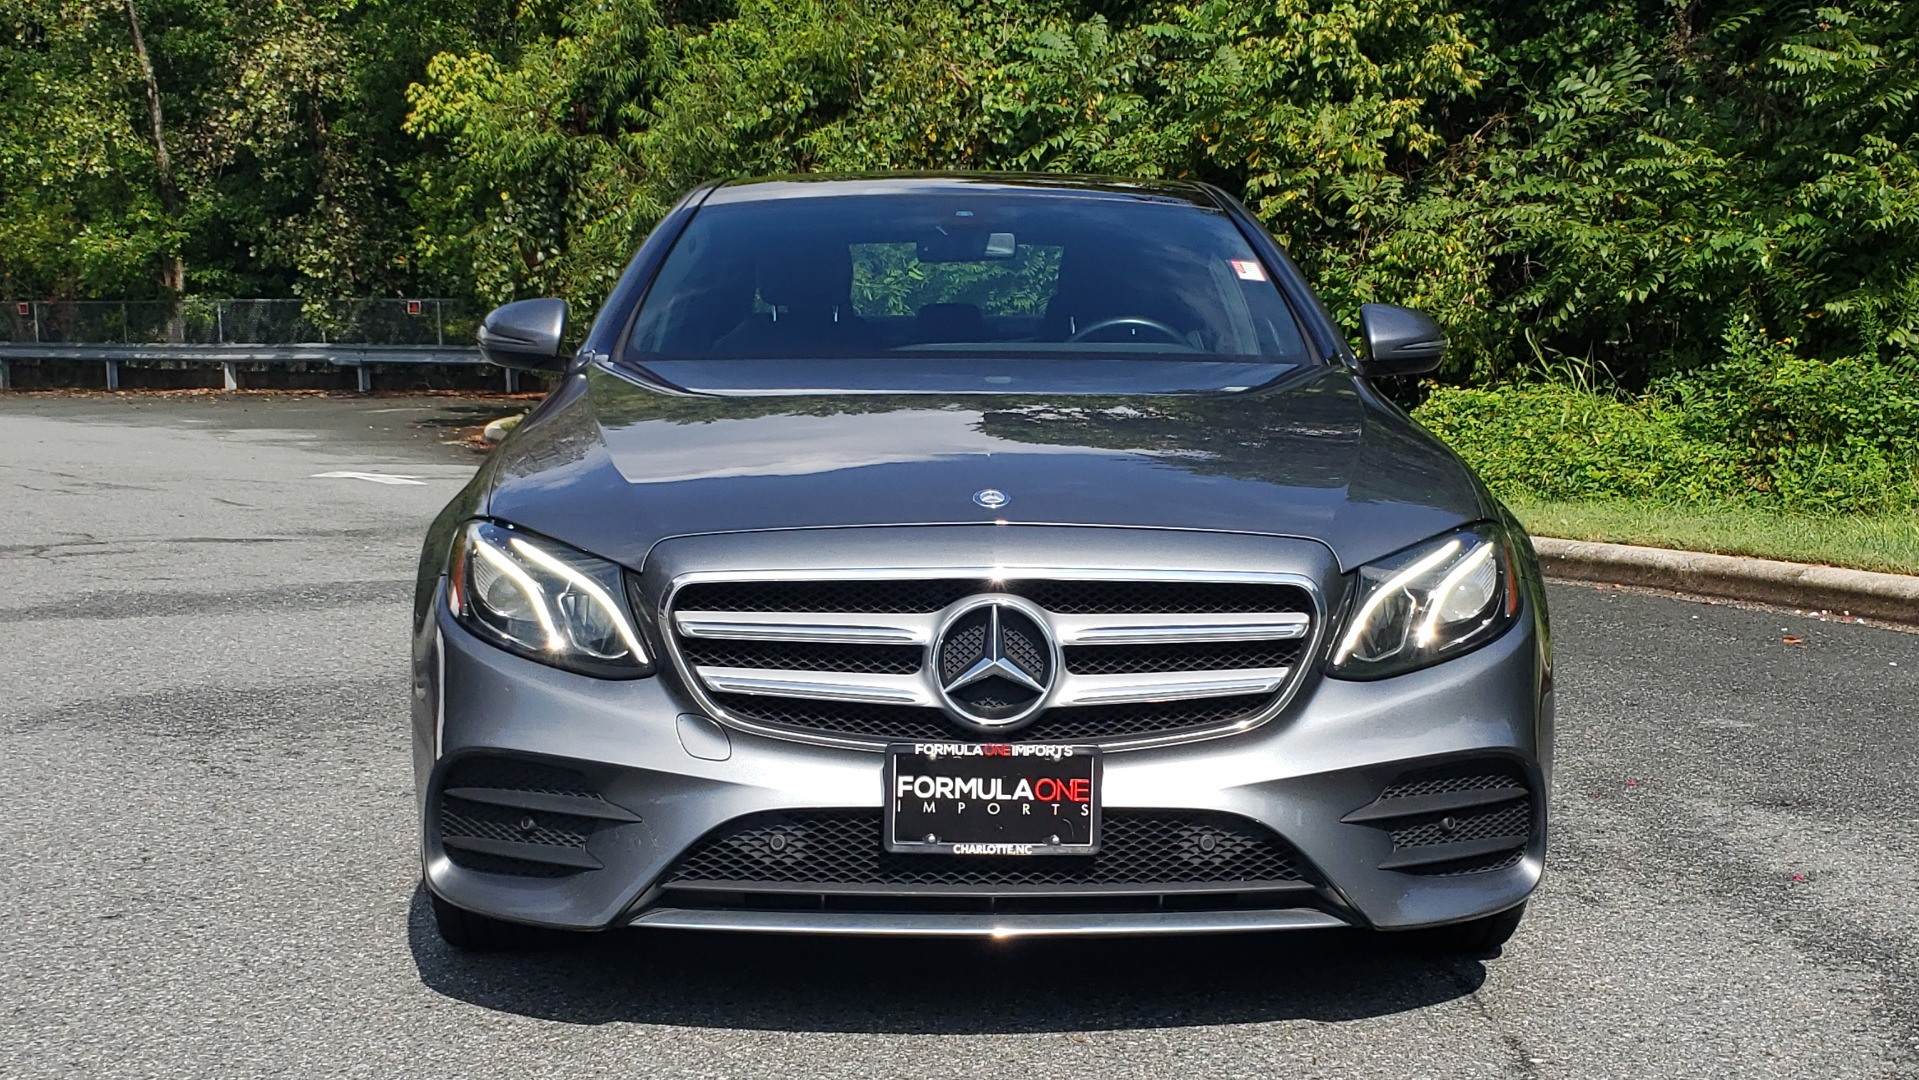 Used 2017 Mercedes-Benz E-CLASS E 300 SPORT / NAV / SUNROOF / HTD STS / BURMESTER / REARVIEW for sale Sold at Formula Imports in Charlotte NC 28227 20